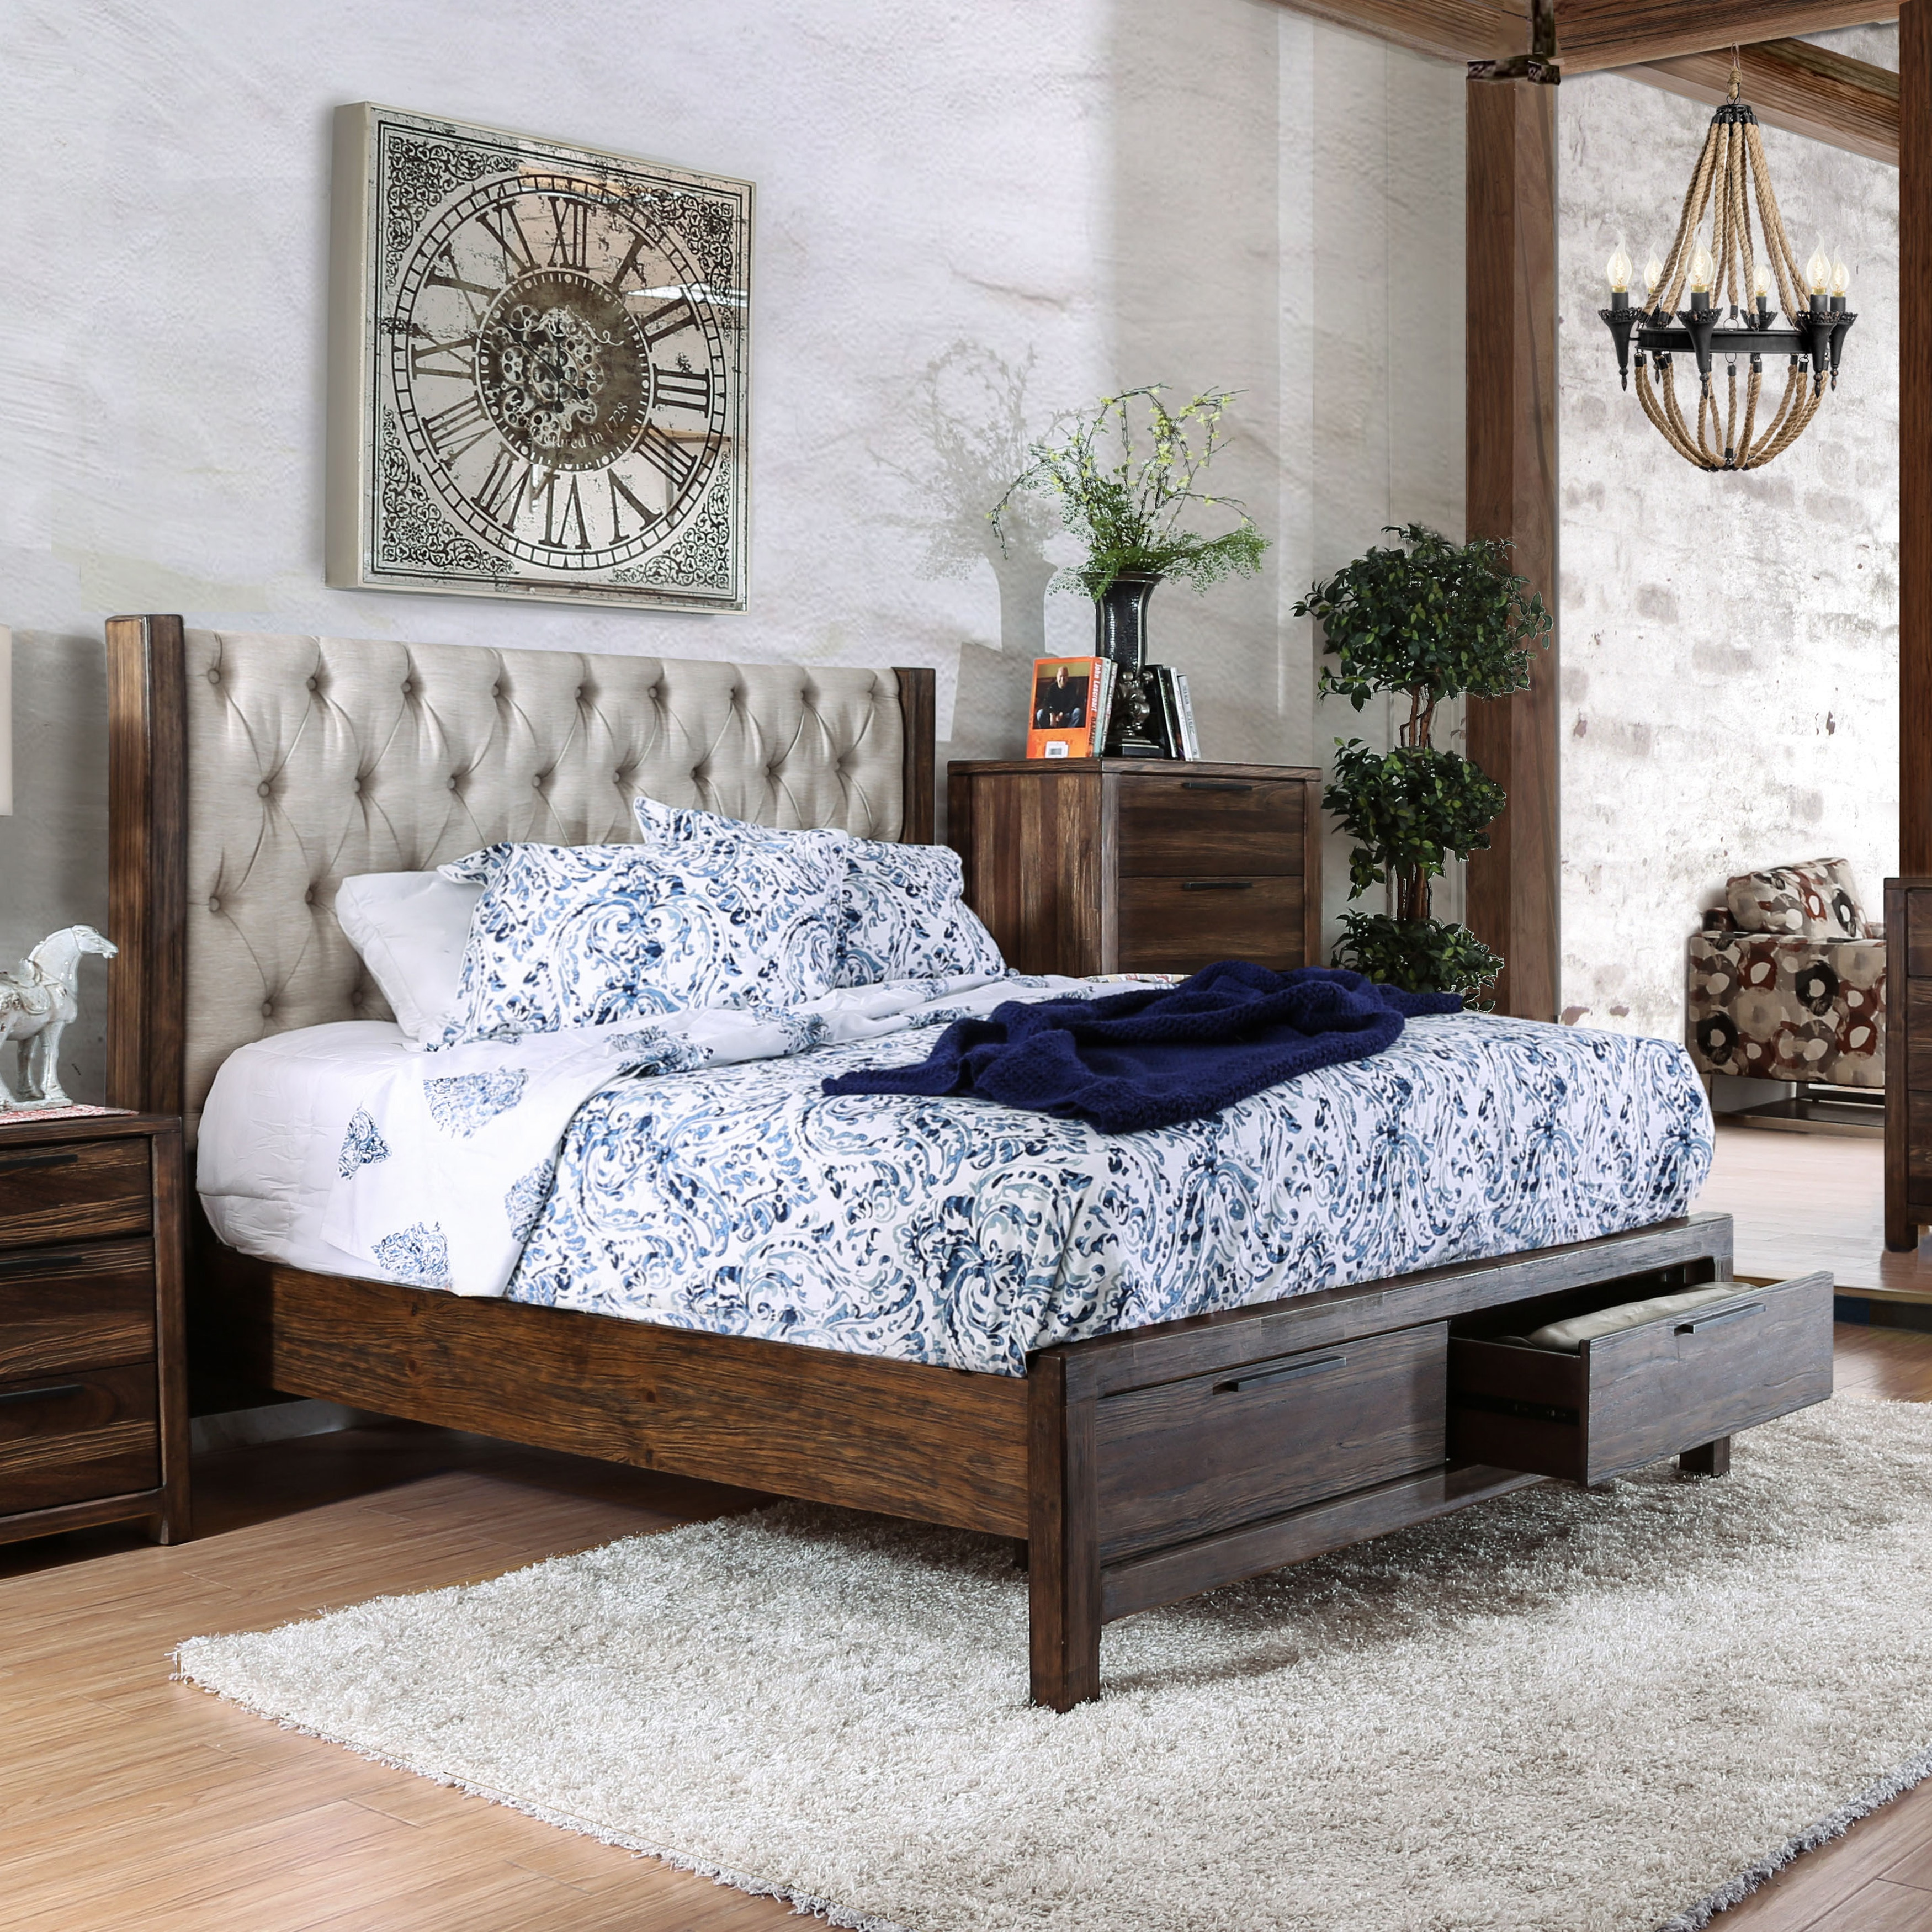 Shop Furniture of America Andrea II Contemporary Button Tufted Rustic Natural Tone Storage Bed - On Sale - Free Shipping Today - Overstock.com - 13779162 & Shop Furniture of America Andrea II Contemporary Button Tufted ...